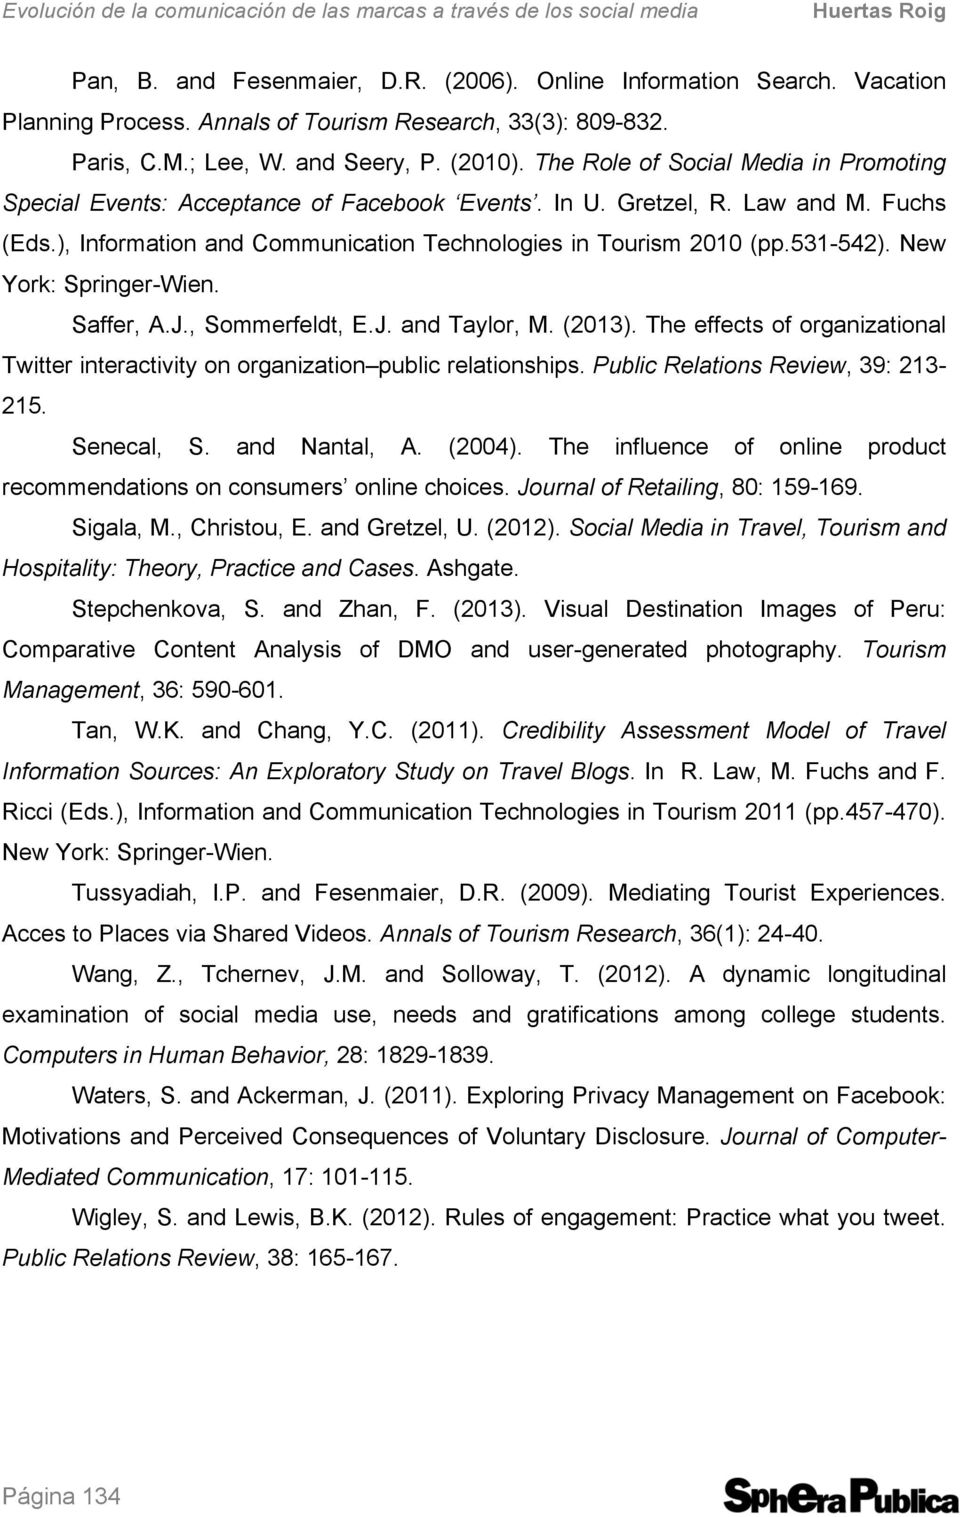 Fuchs (Eds.), Information and Communication Technologies in Tourism 2010 (pp.531-542). New York: Springer-Wien. Saffer, A.J., Sommerfeldt, E.J. and Taylor, M. (2013).